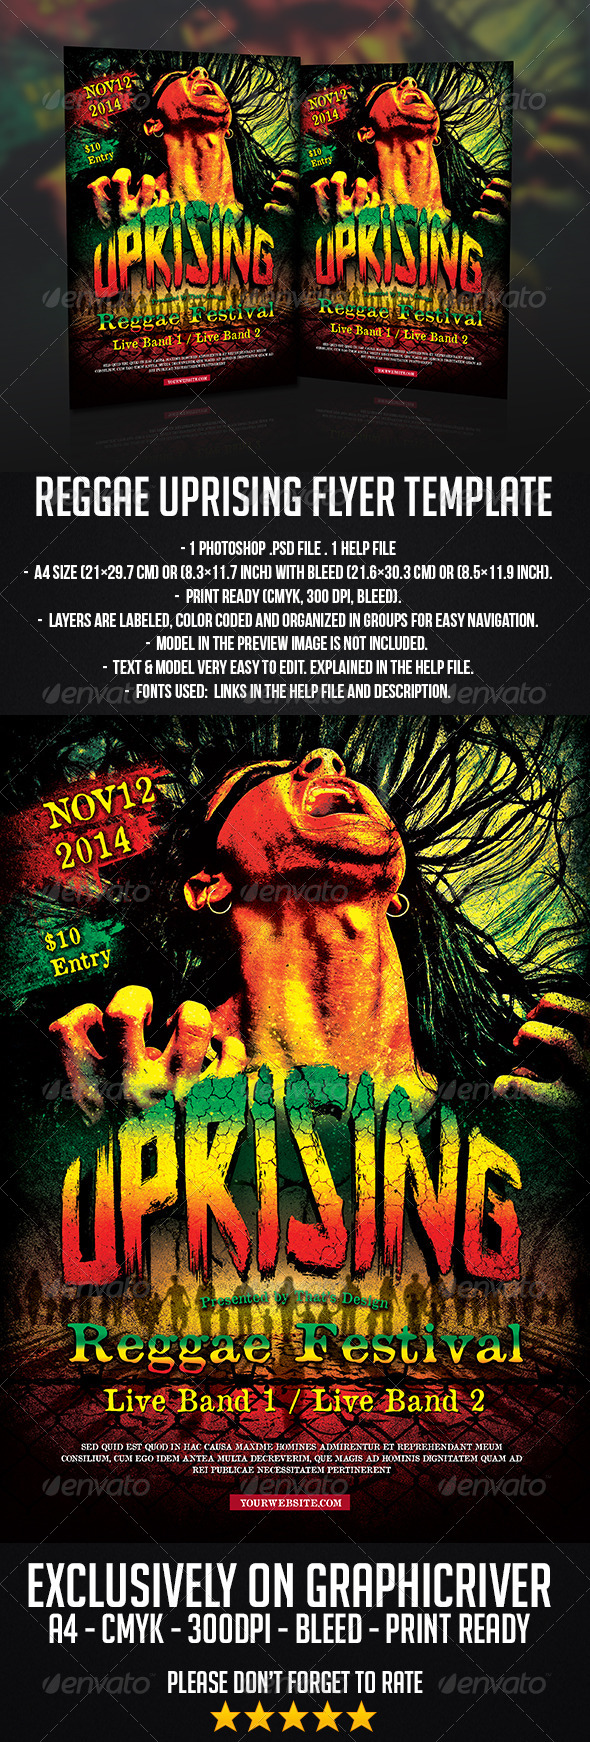 GraphicRiver Reggae Uprising Flyer Template 7665696